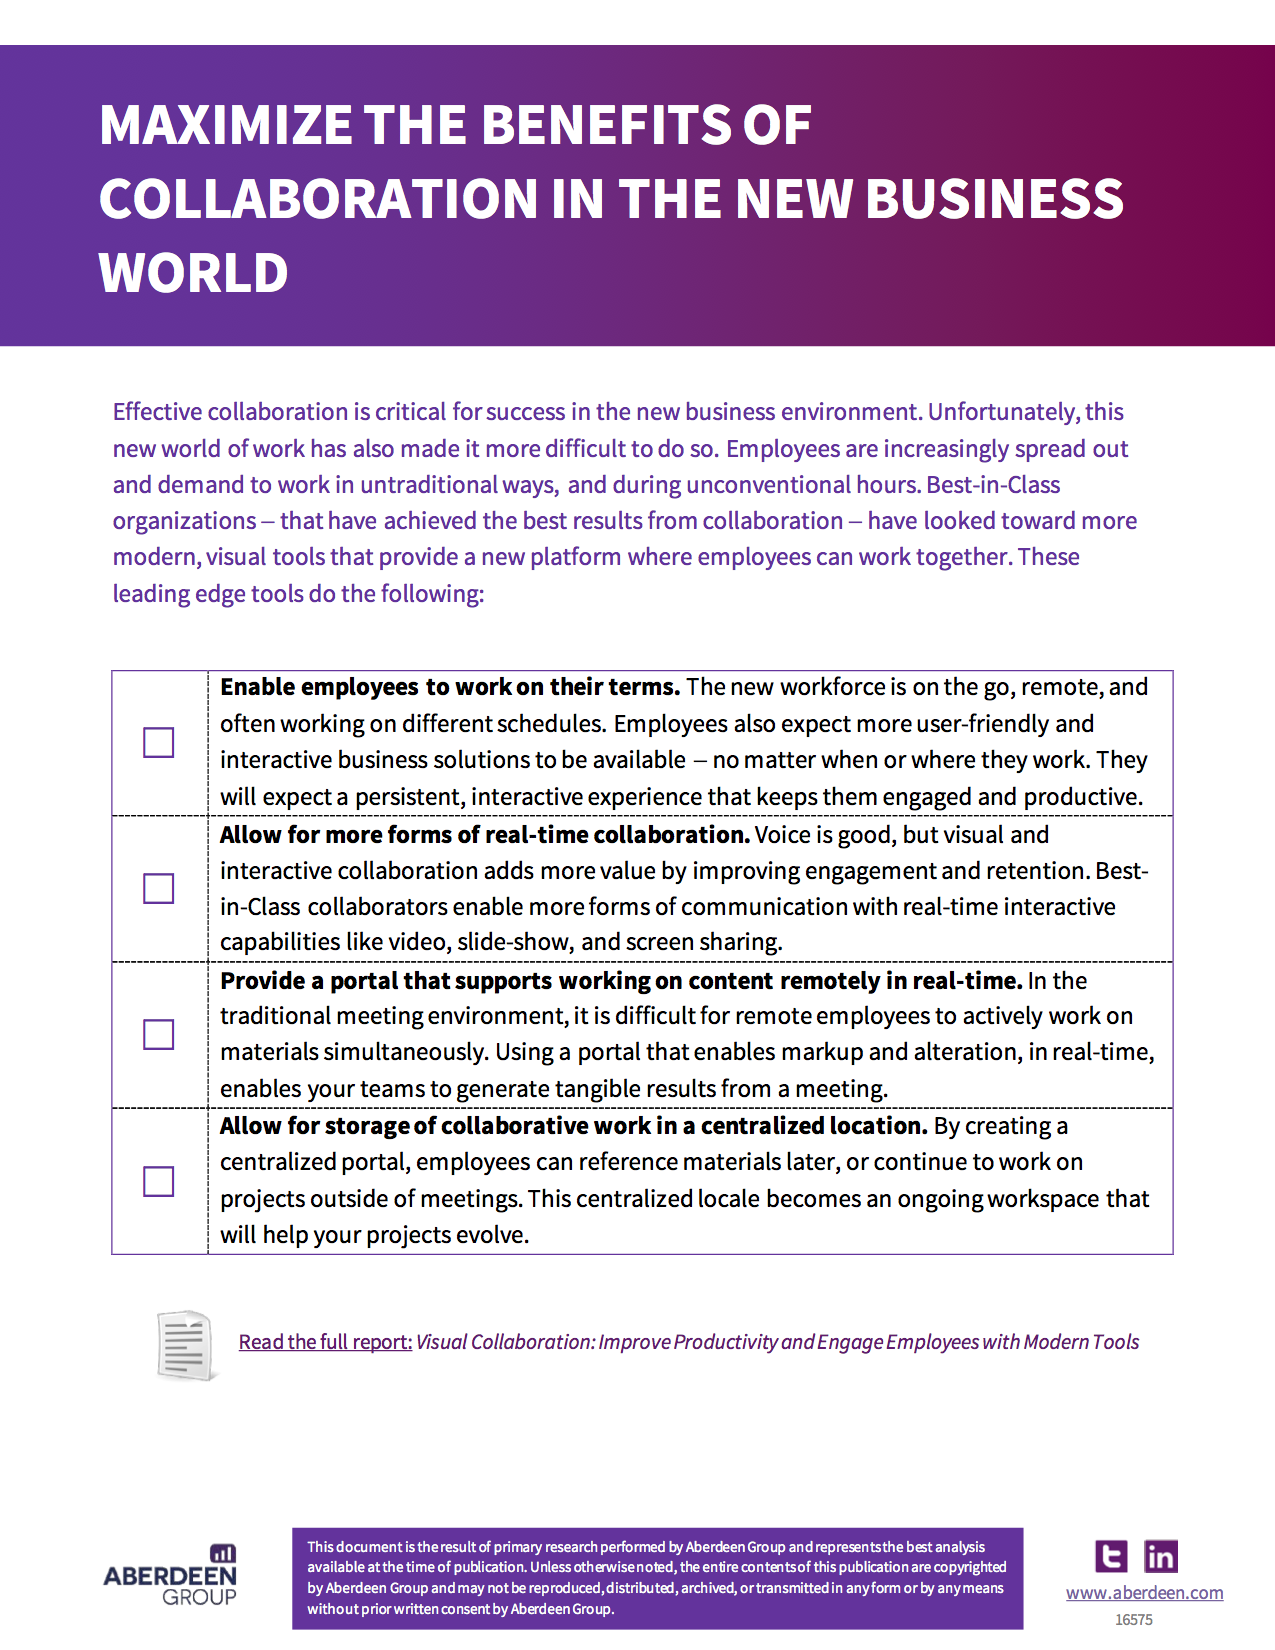 Maximize The Benefits of Collaboration in the New Business World.png